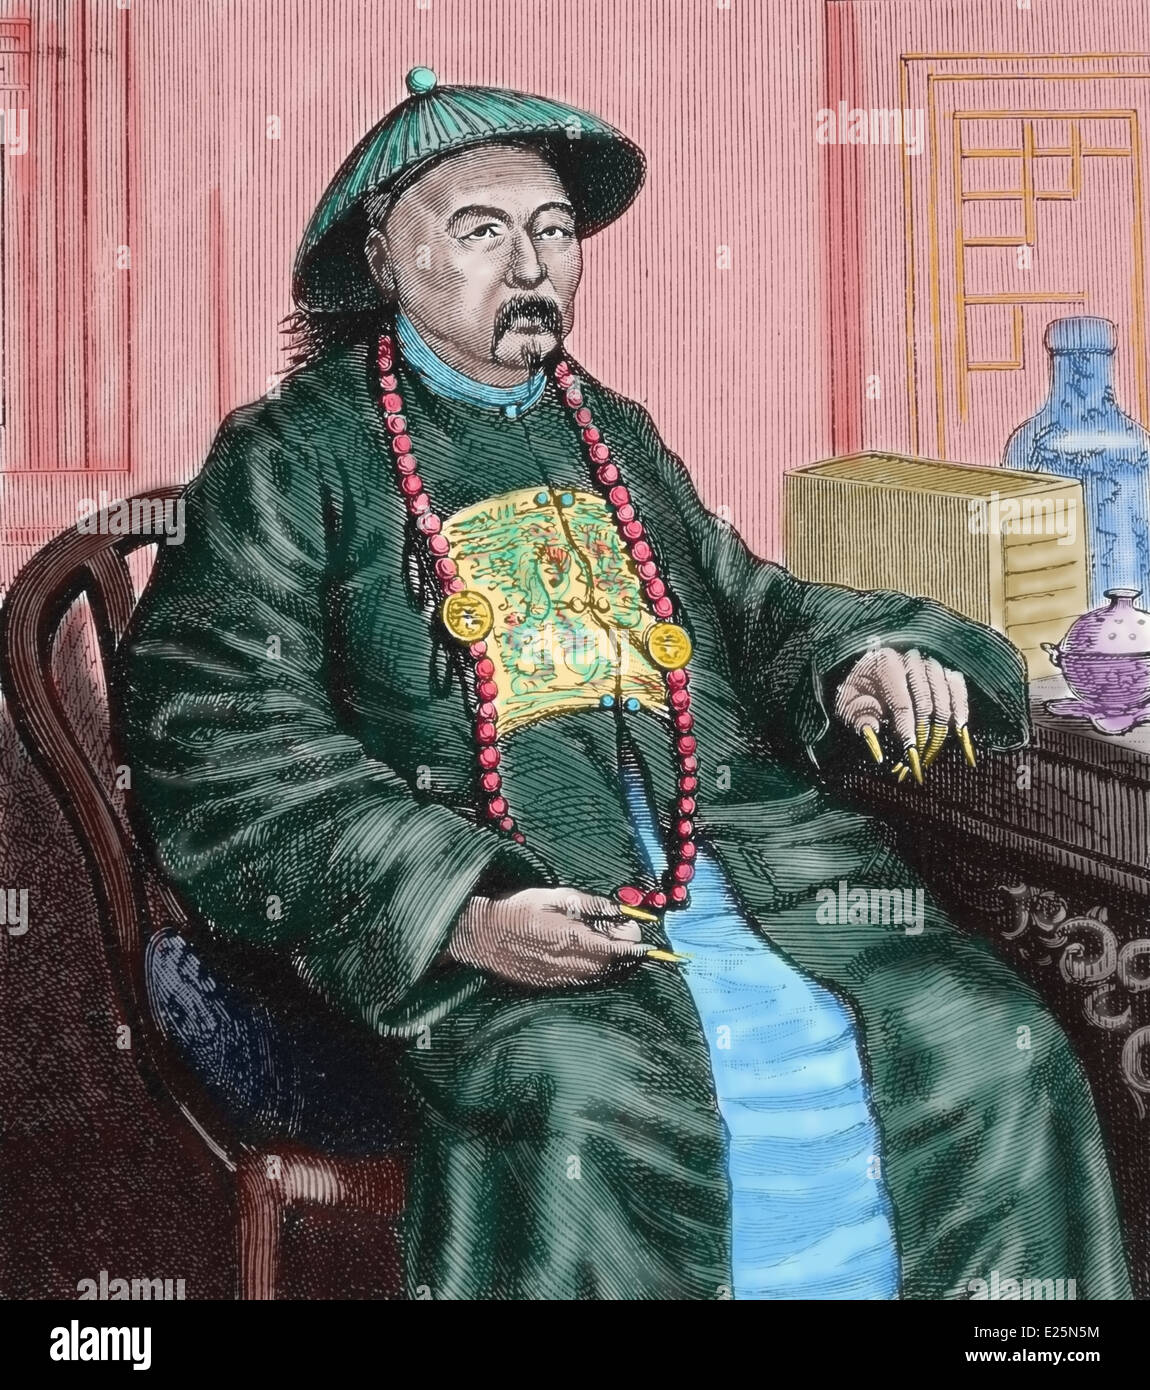 Asia. China. Governor of a province, 1900. Engraving. Later colouration. - Stock Image